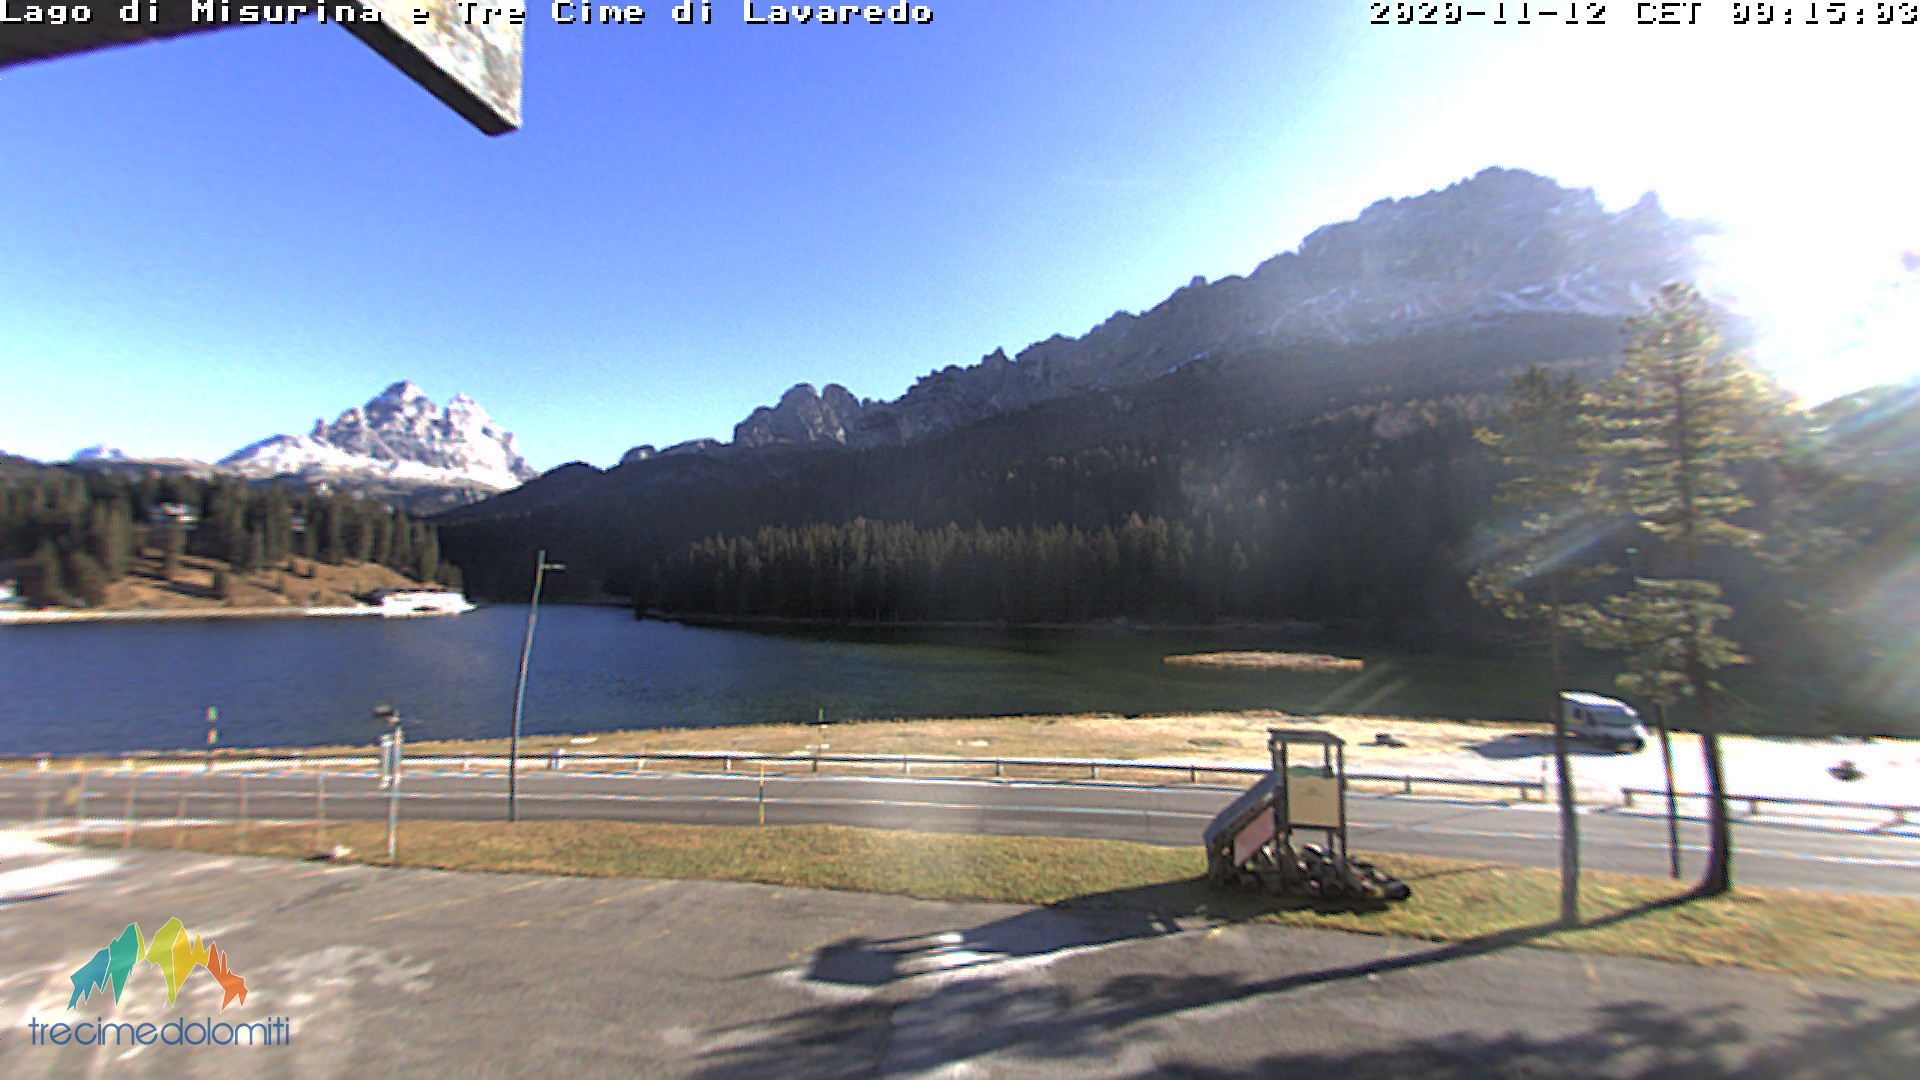 Webcam Lago di Misurina - Tre Cime